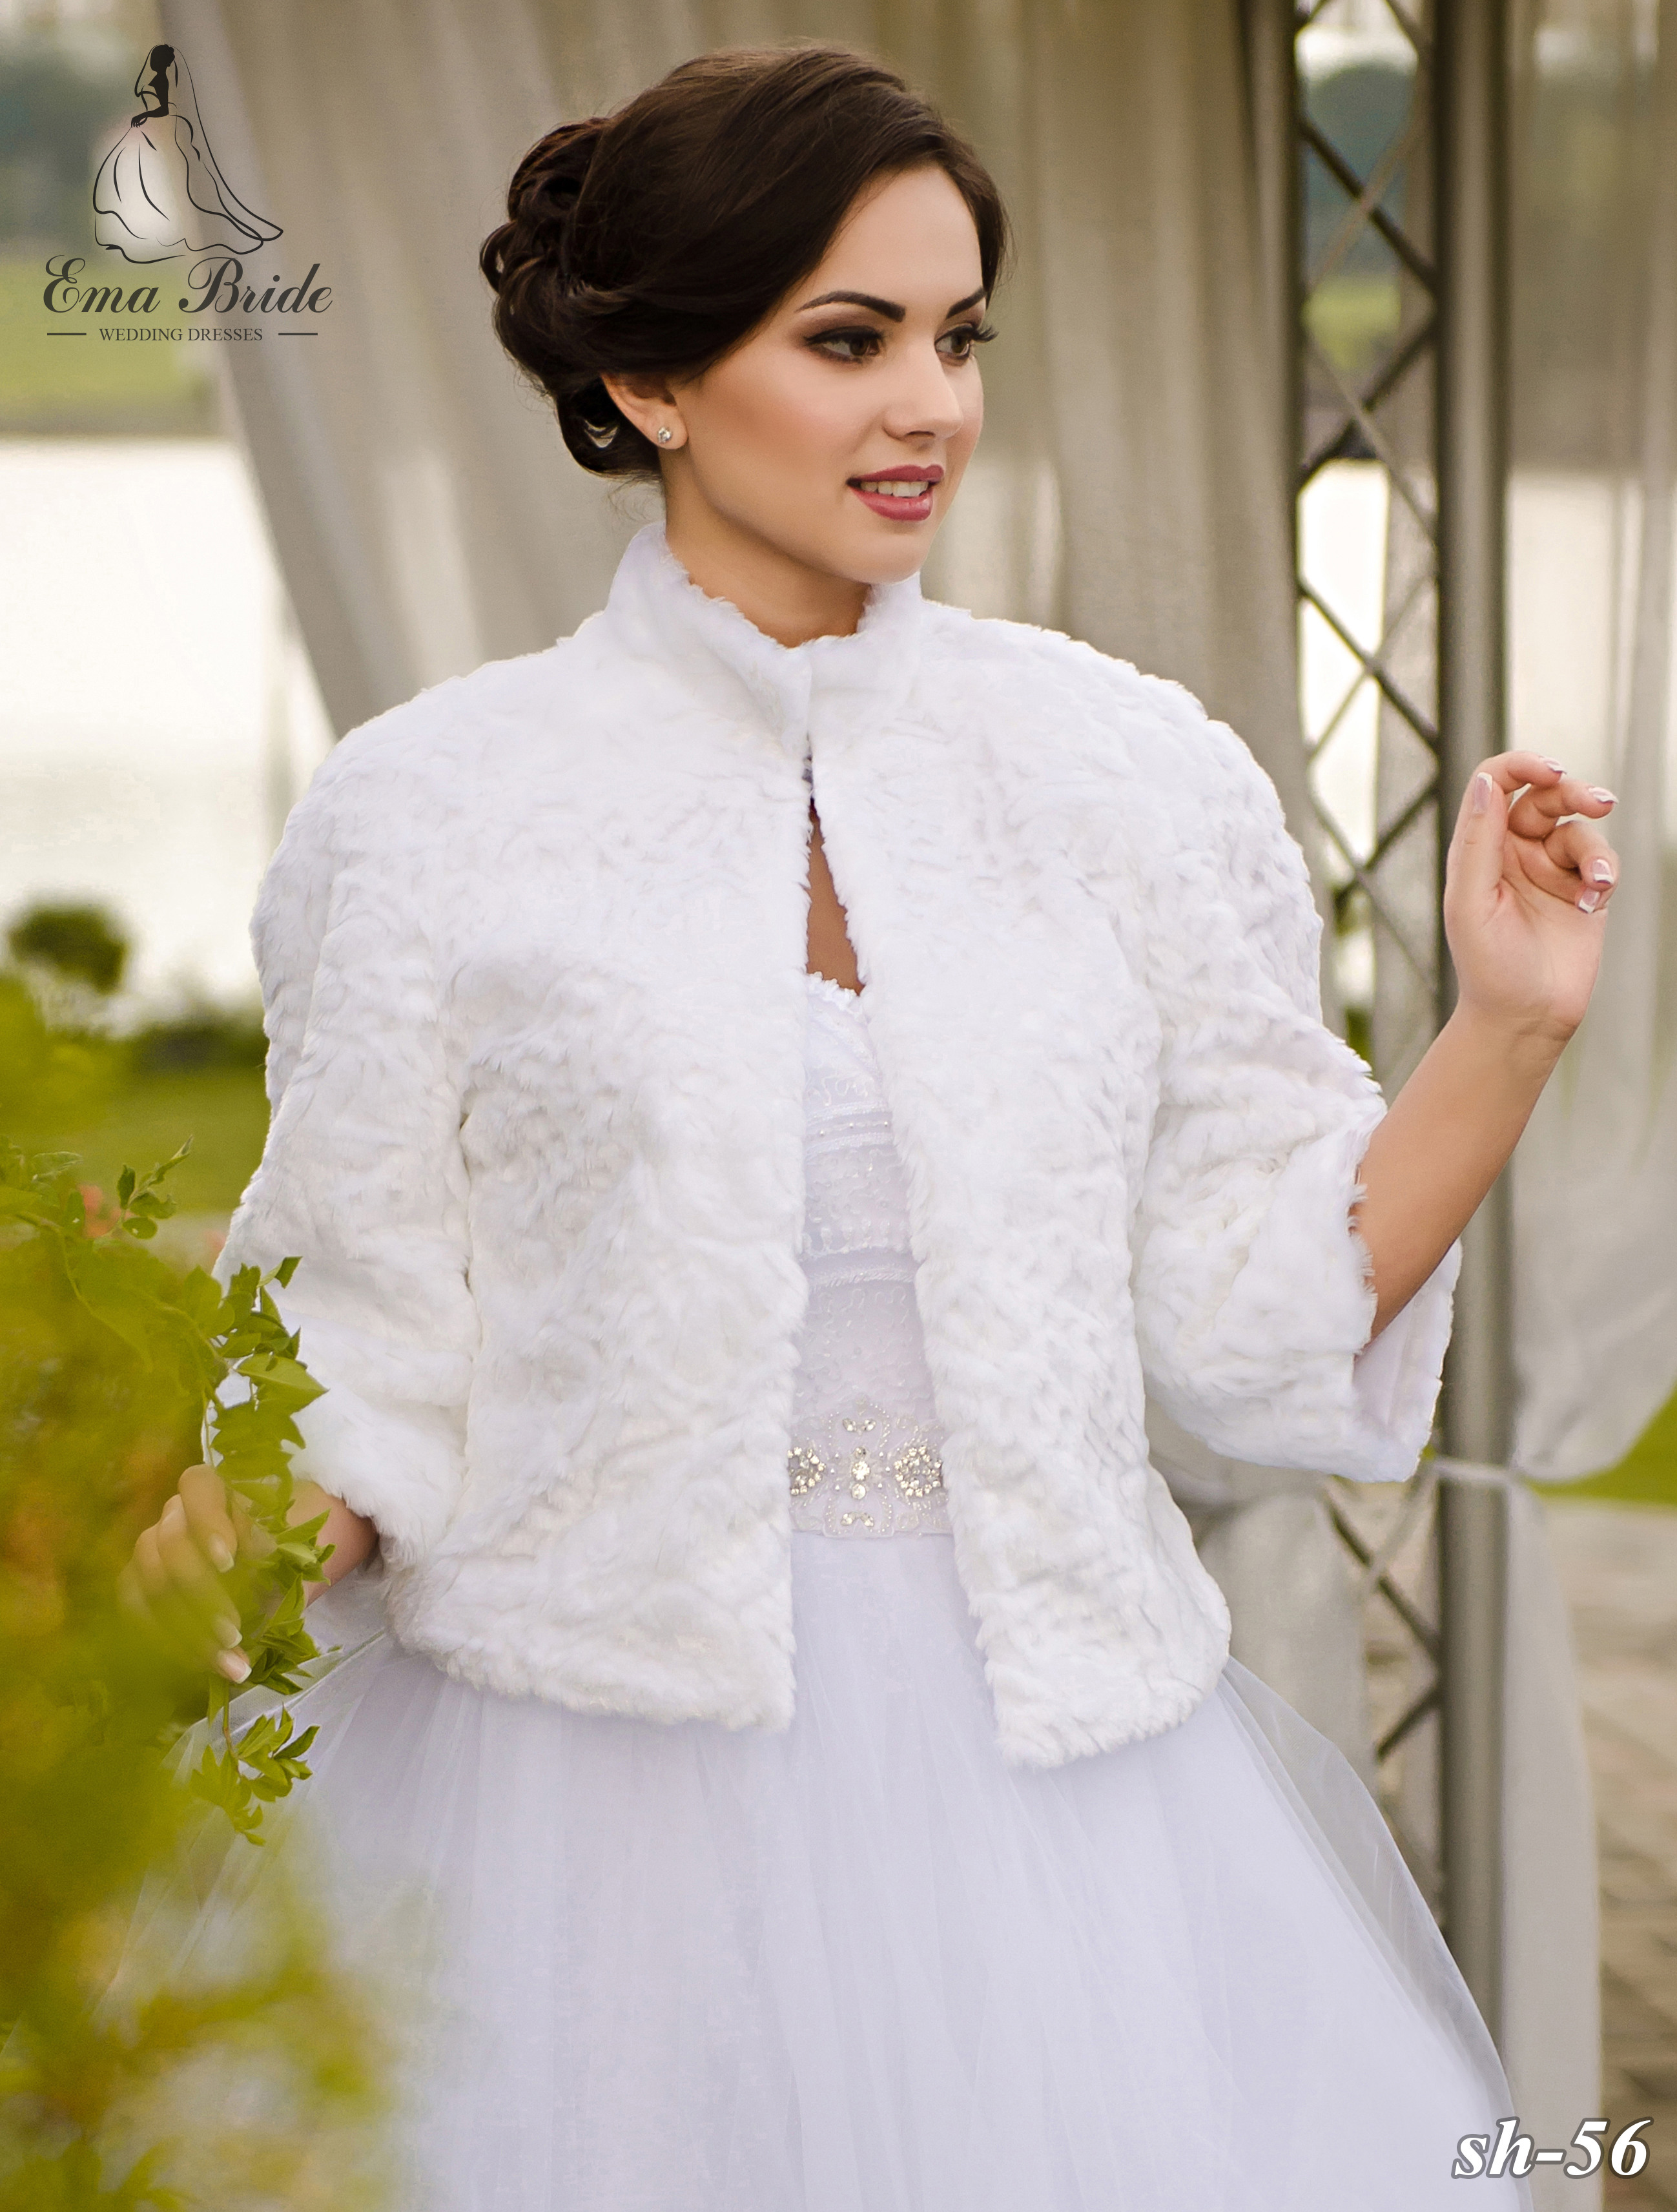 Wedding fur coat SH-56